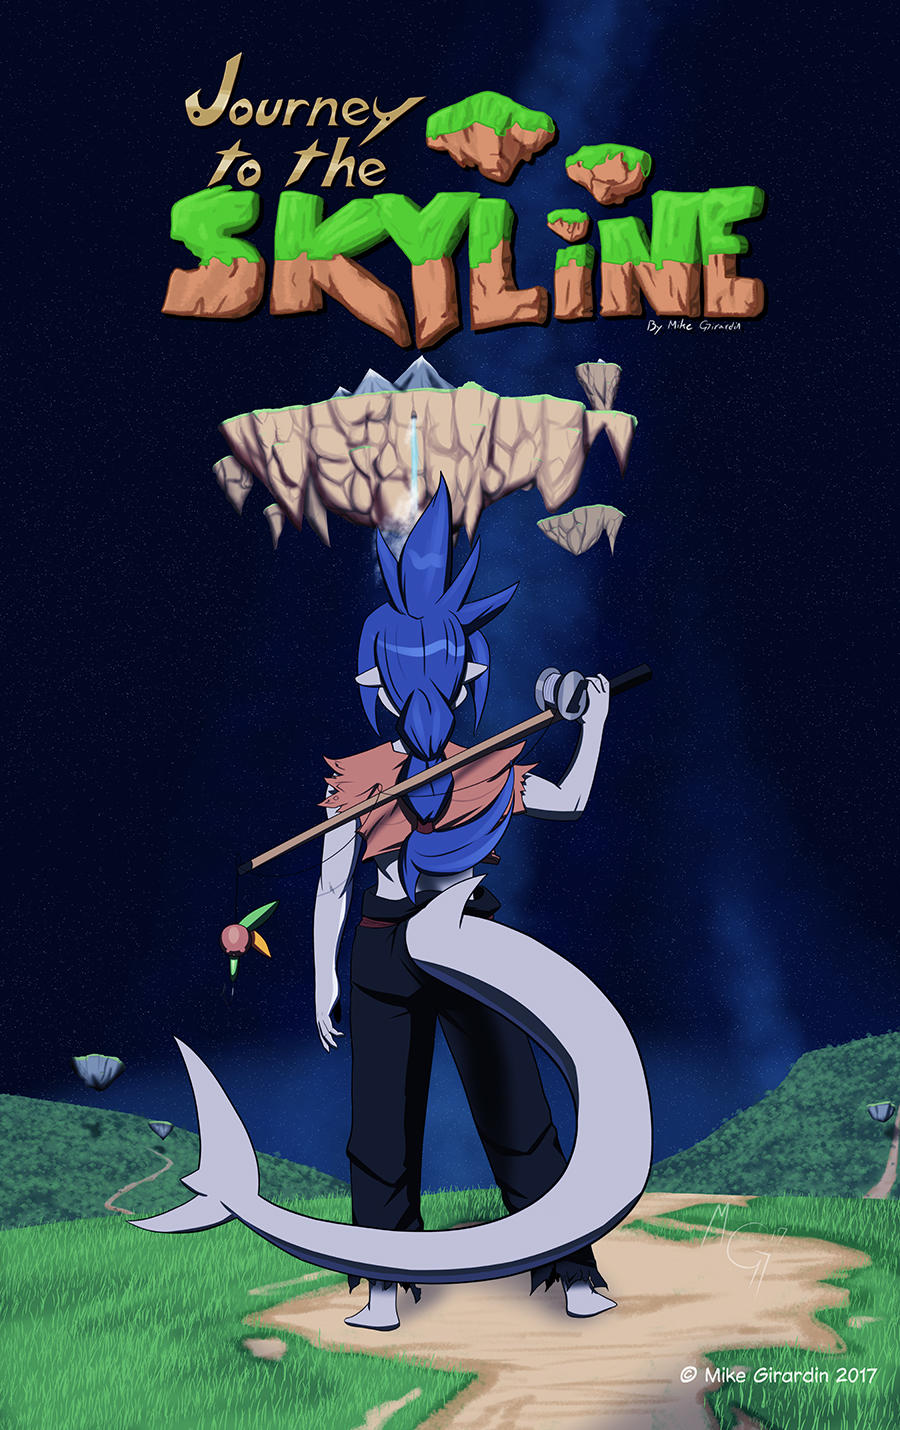 Journey to the Skyline issue 03 cover